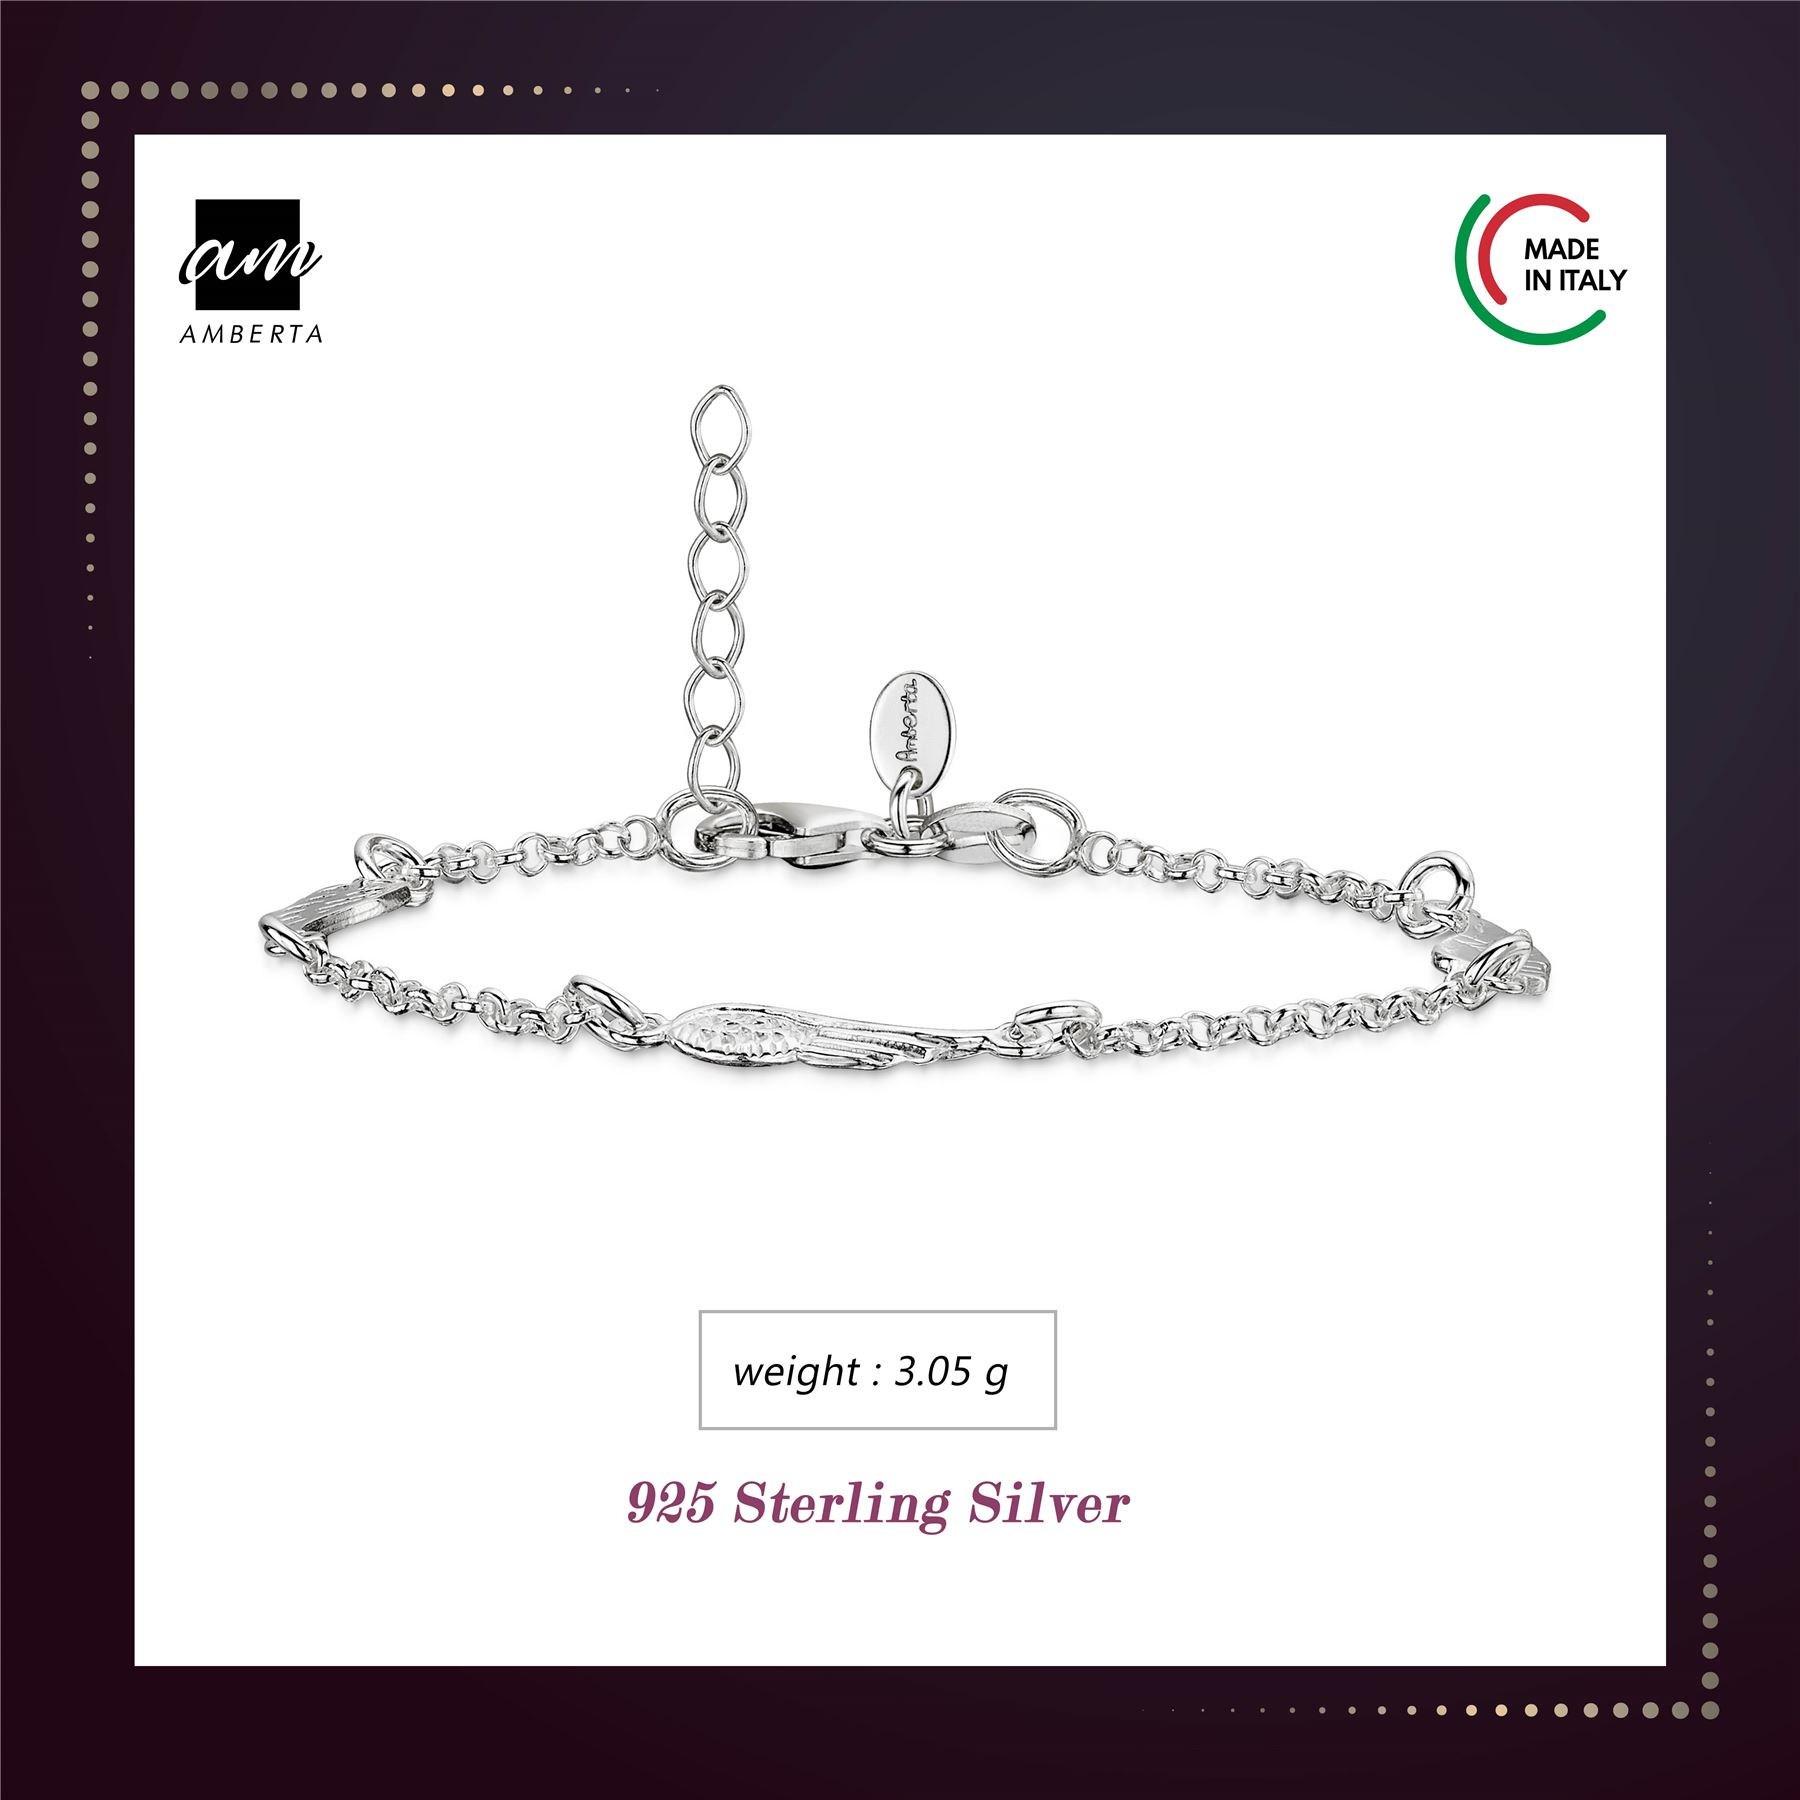 Amberta-925-Sterling-Silver-Adjustable-Rolo-Chain-Bracelet-with-Charms-for-Women miniature 5